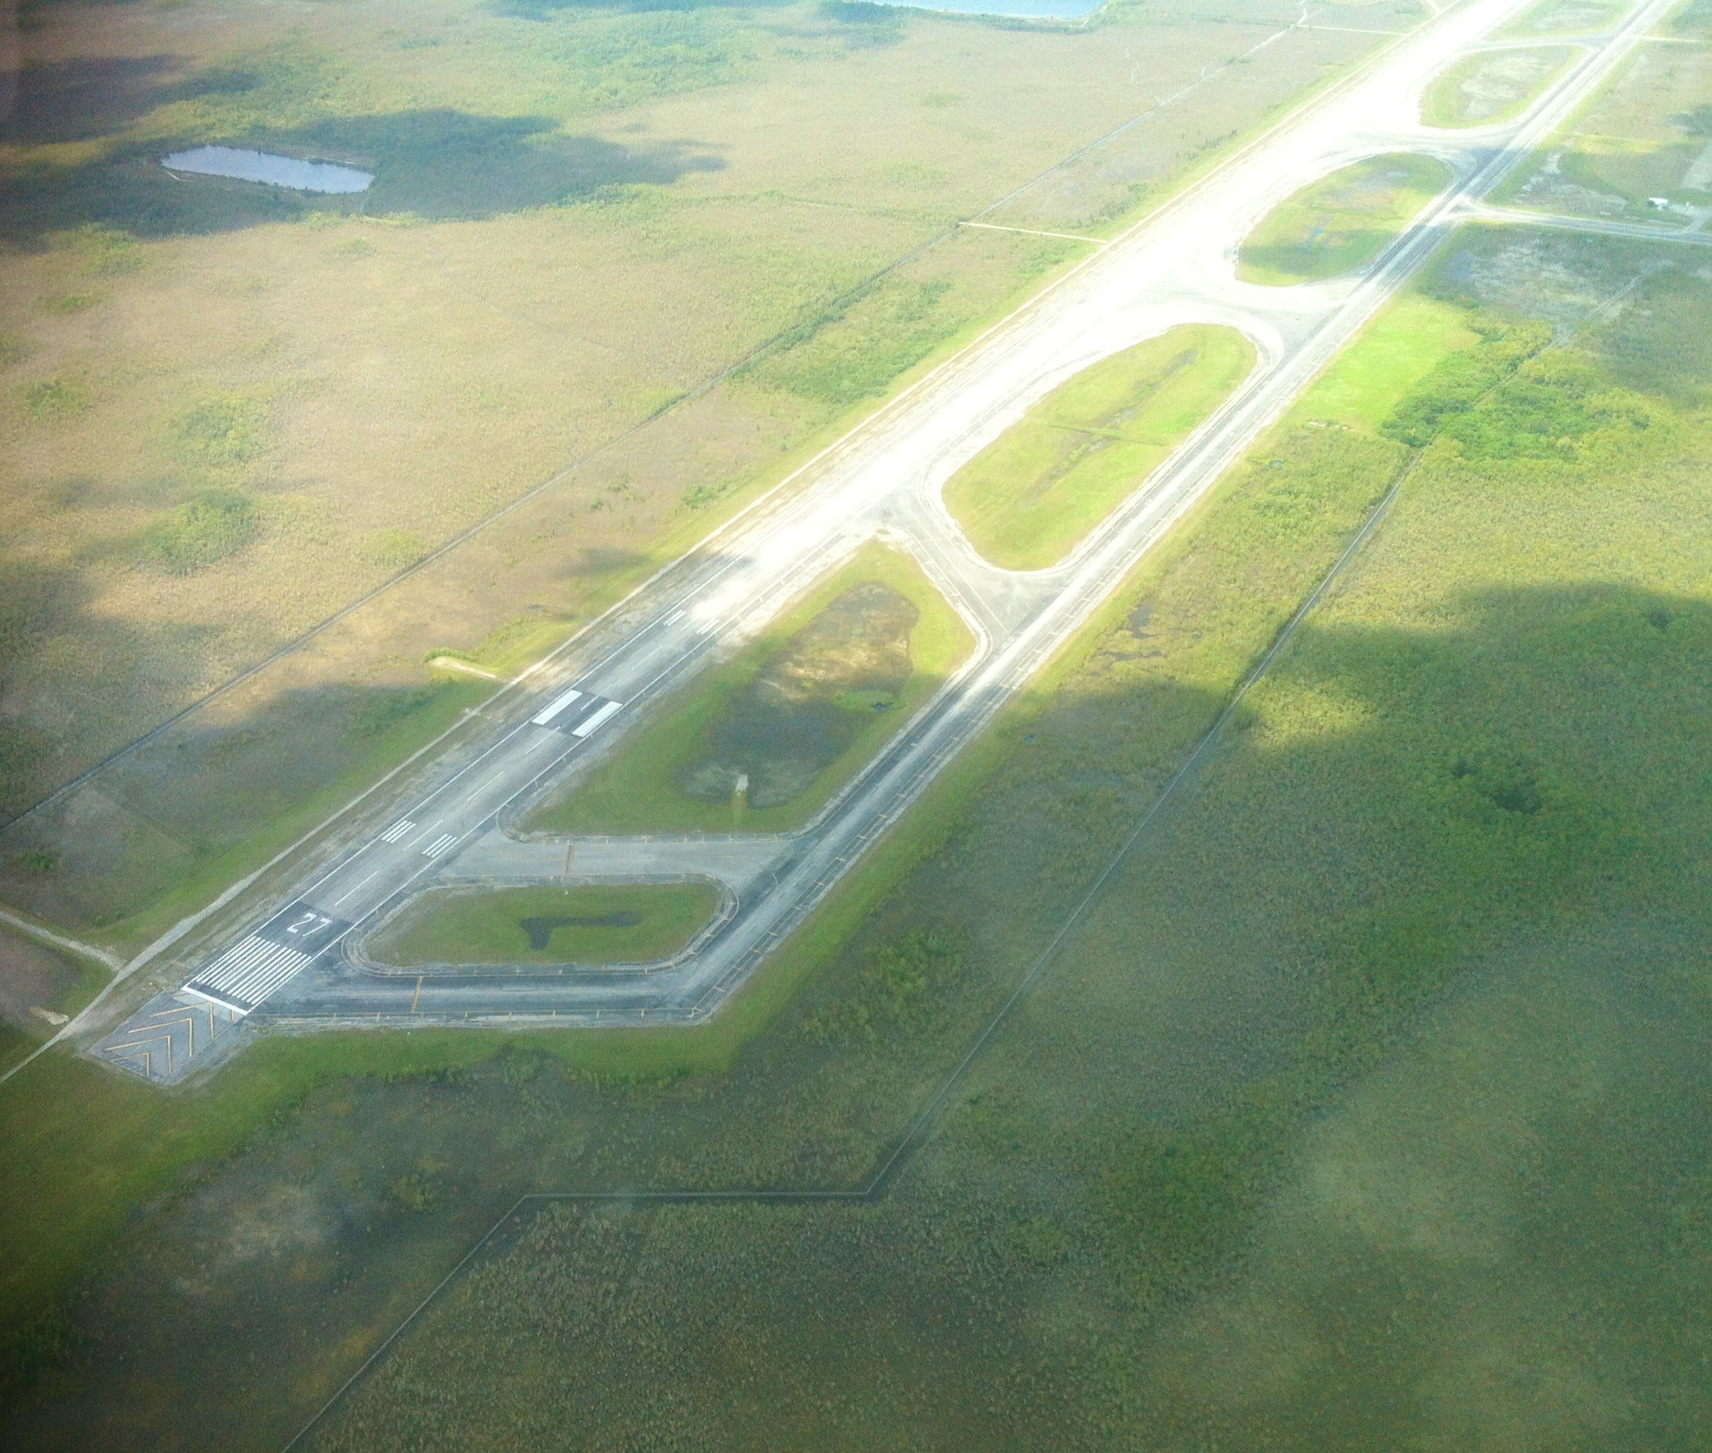 Here's a snap-shot taking with my iPhone while flying a Cessna 152 at ...